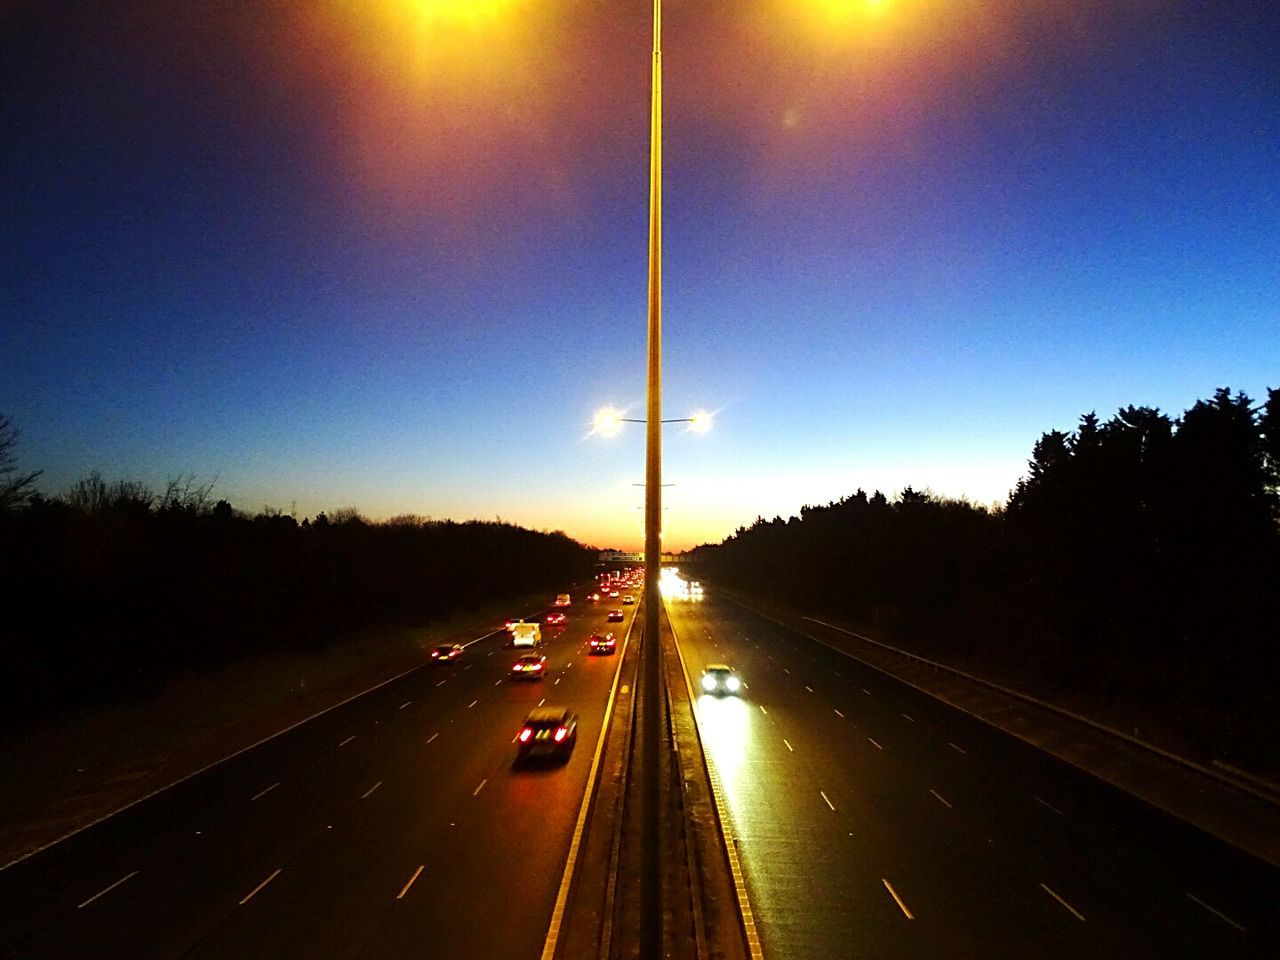 Morning Sky Motor Way M40 Freeway Transportation Road Highway Illuminated Mode Of Transport Coloured Sky SplitScreen Down The Middle EyeEm Best Shots EyeEm Getty Collection Tranquility Popularphoto Gettyimagesgallery Eyeem Market Modern